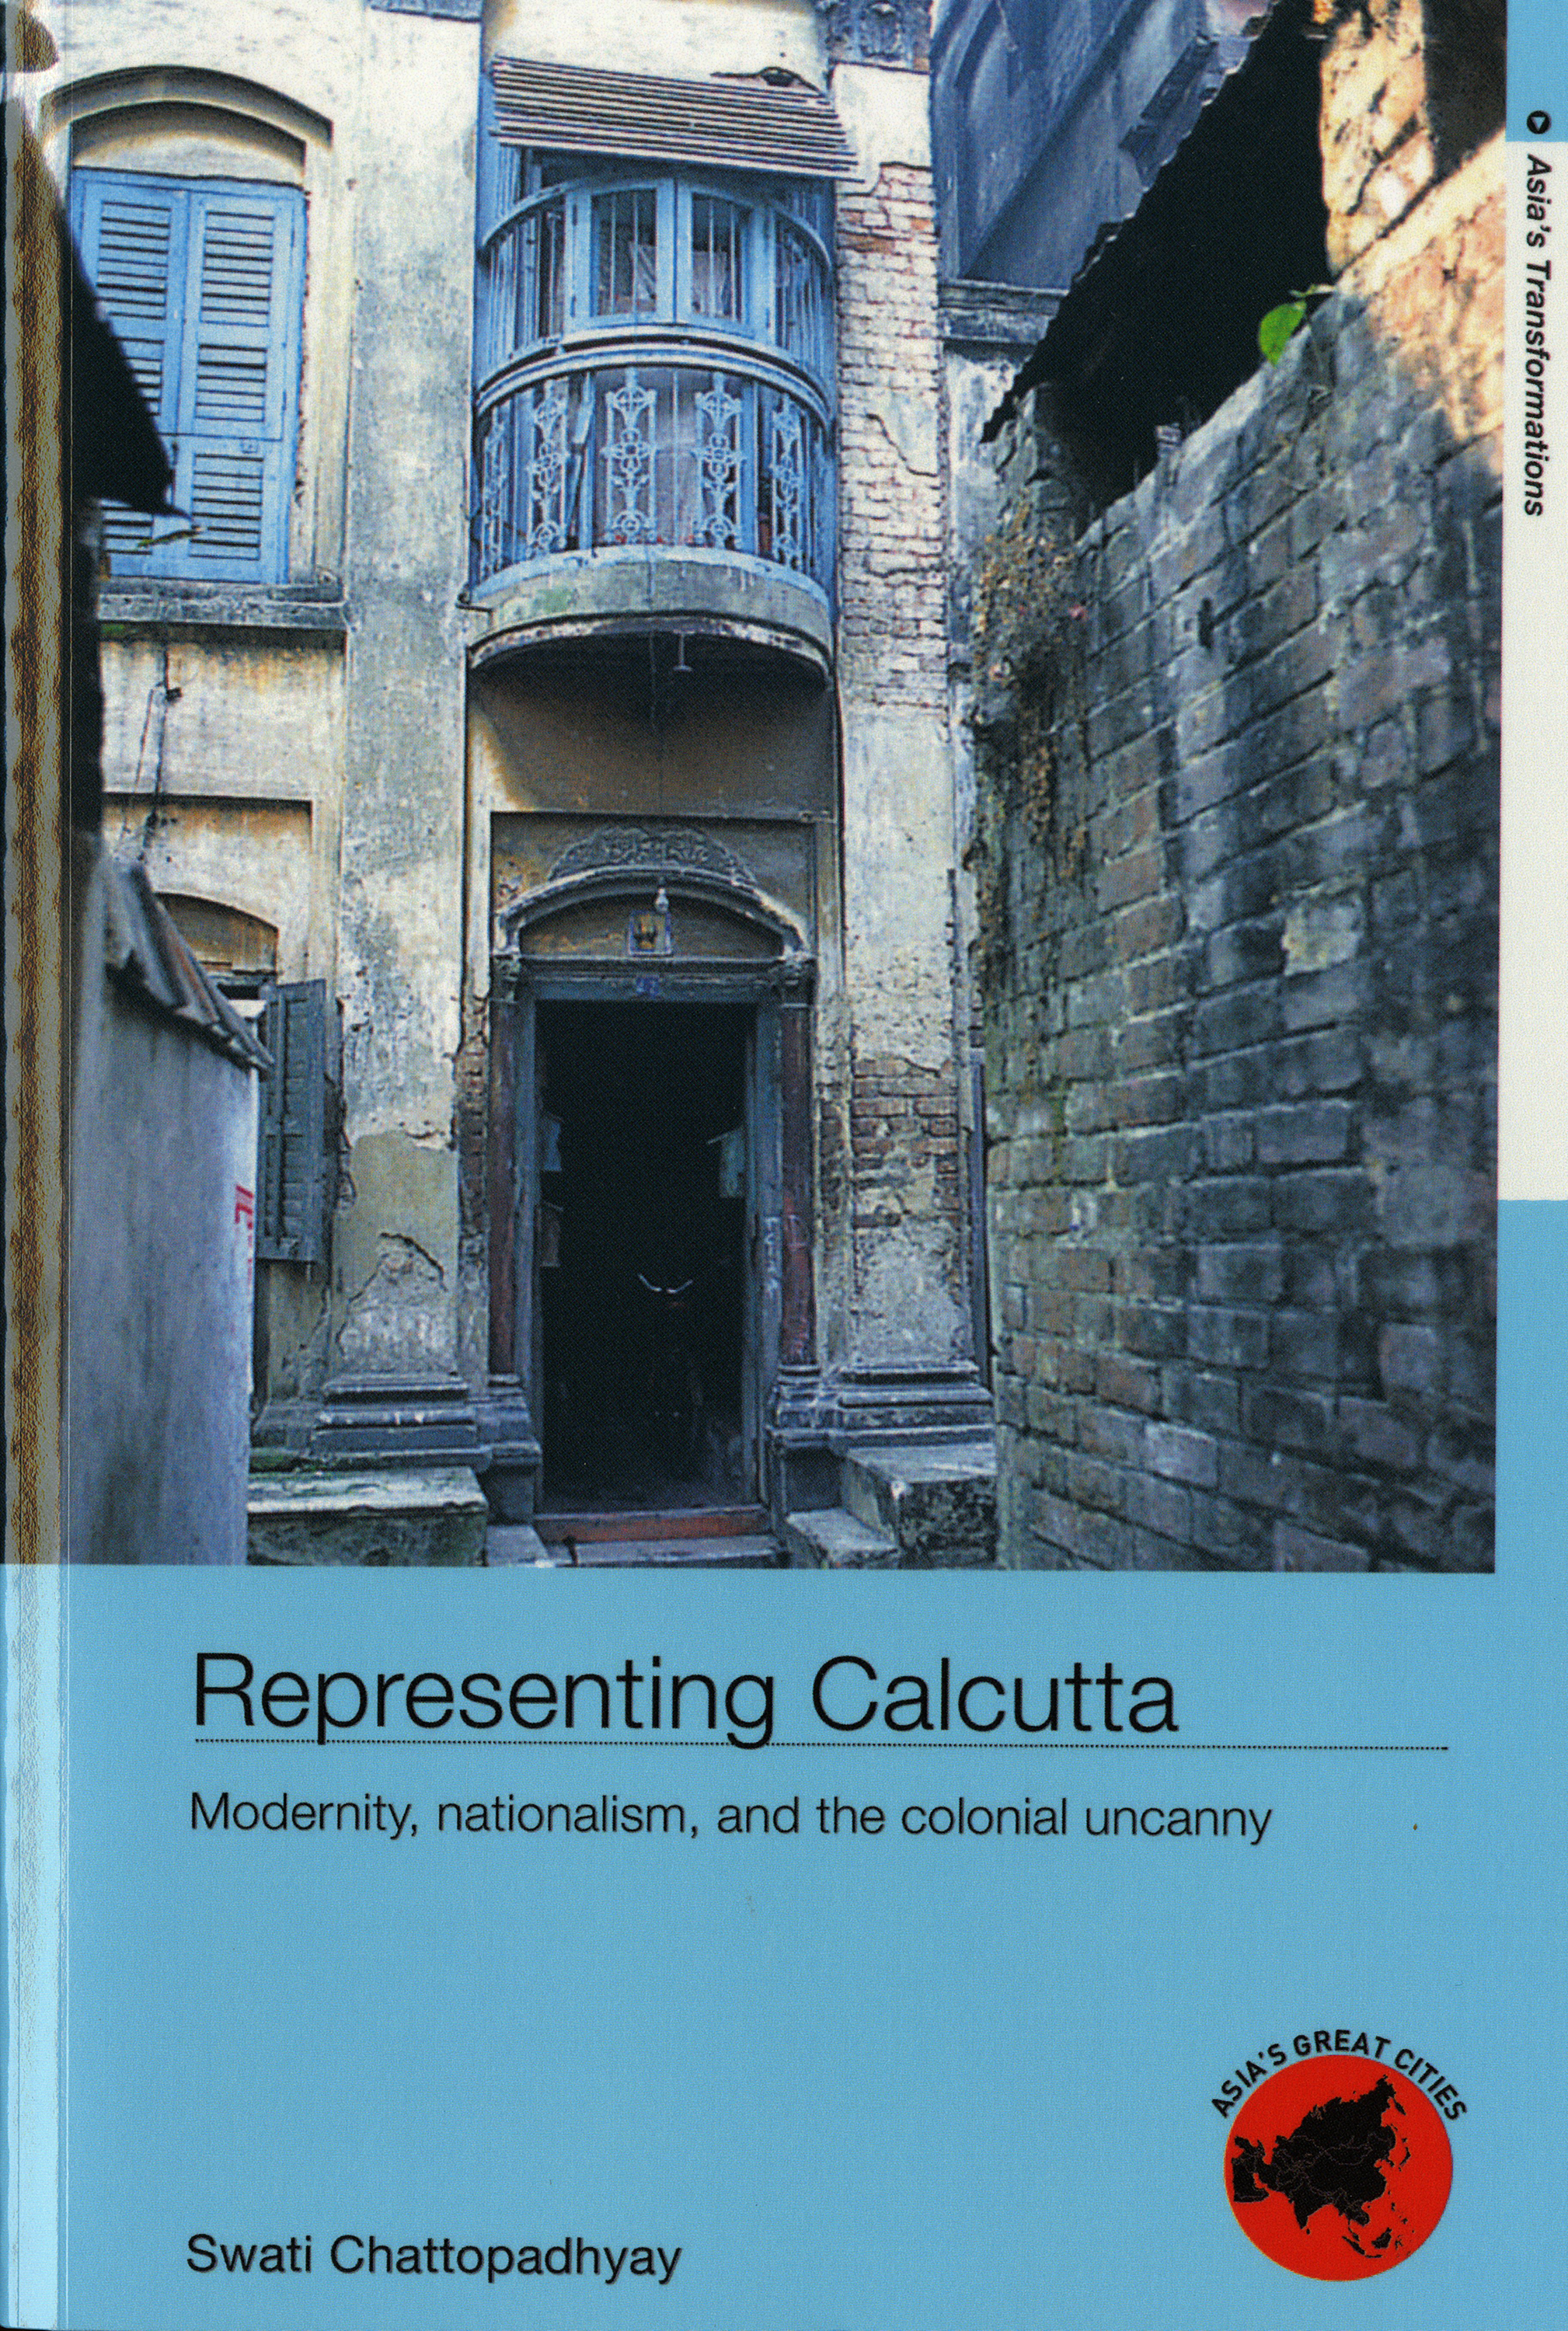 Swati Chattopadhyay. Representing Calcutta: Modernity, Nationalism and the Colonial Uncanny. Oxford: Routledge, 2006.